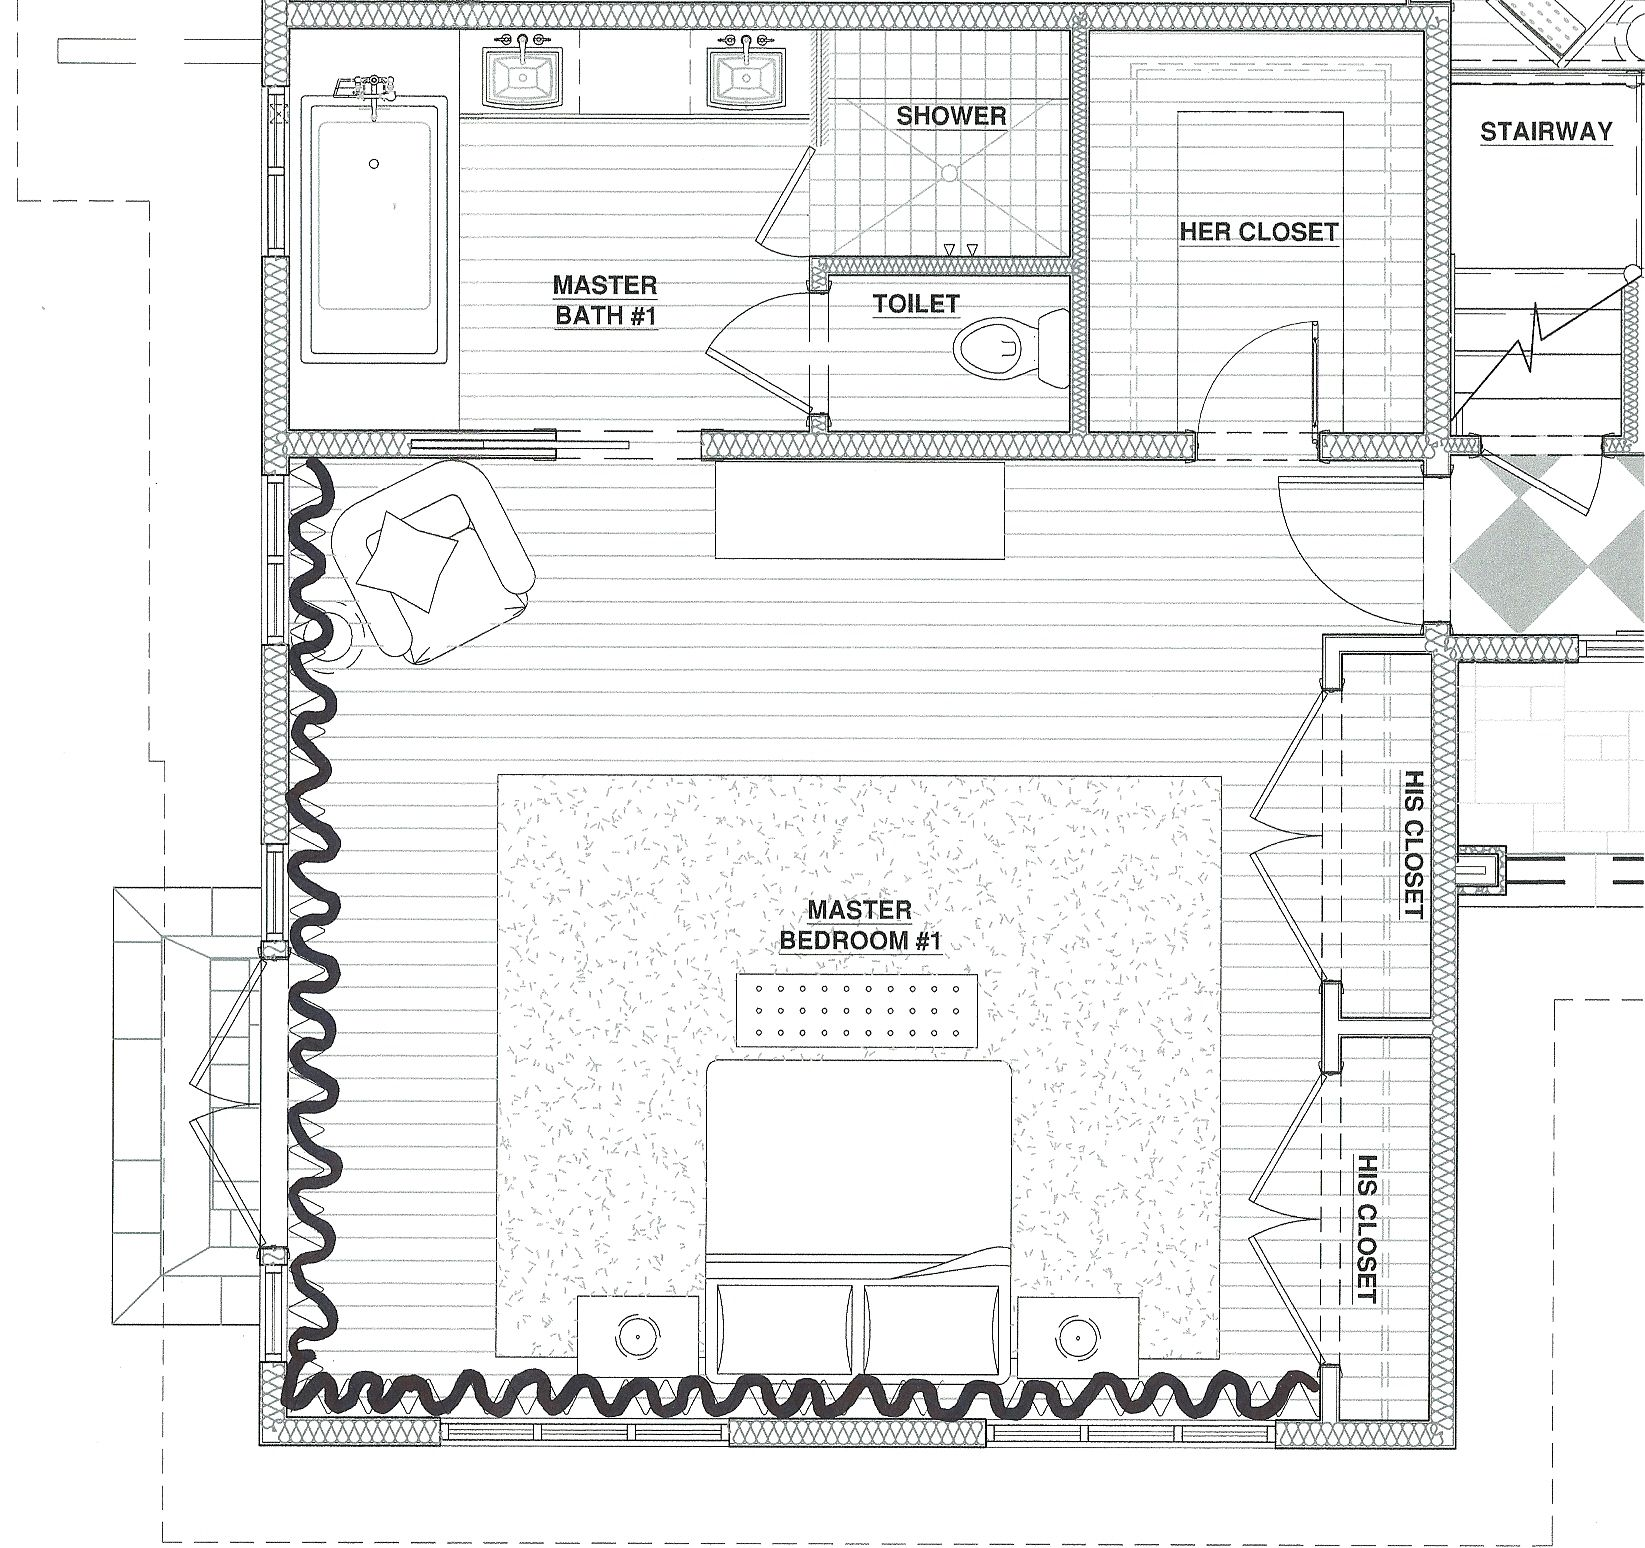 Master Bedroom Floor Plans Picture Gallery Of The Master Bedroom Floor Plan Ideas Master